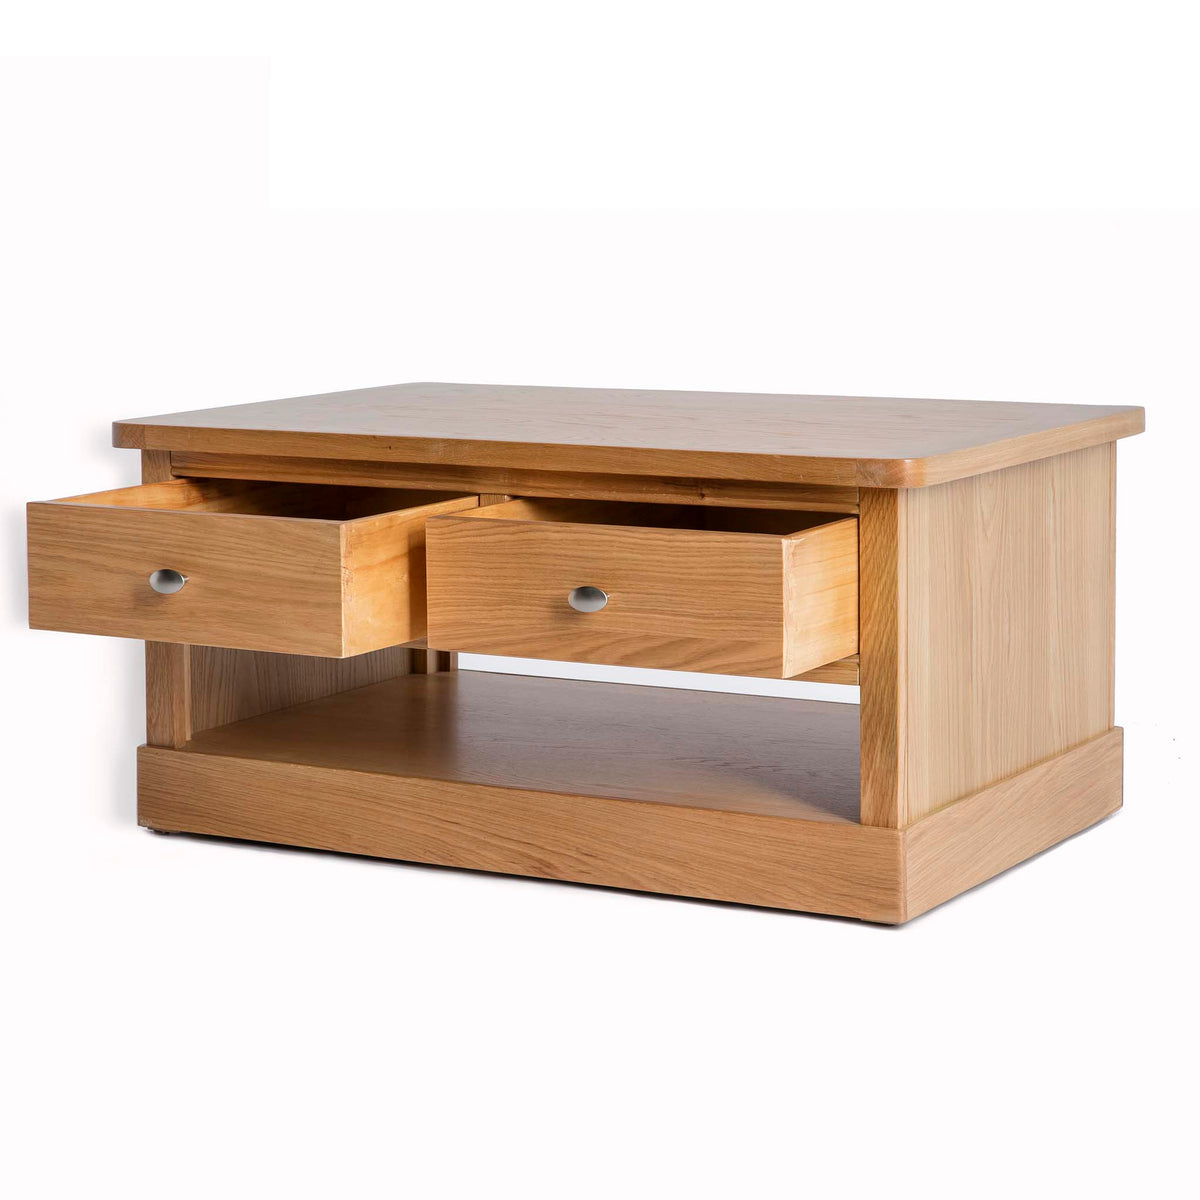 Hampshire Oak Coffee Table - Side view with both drawers open